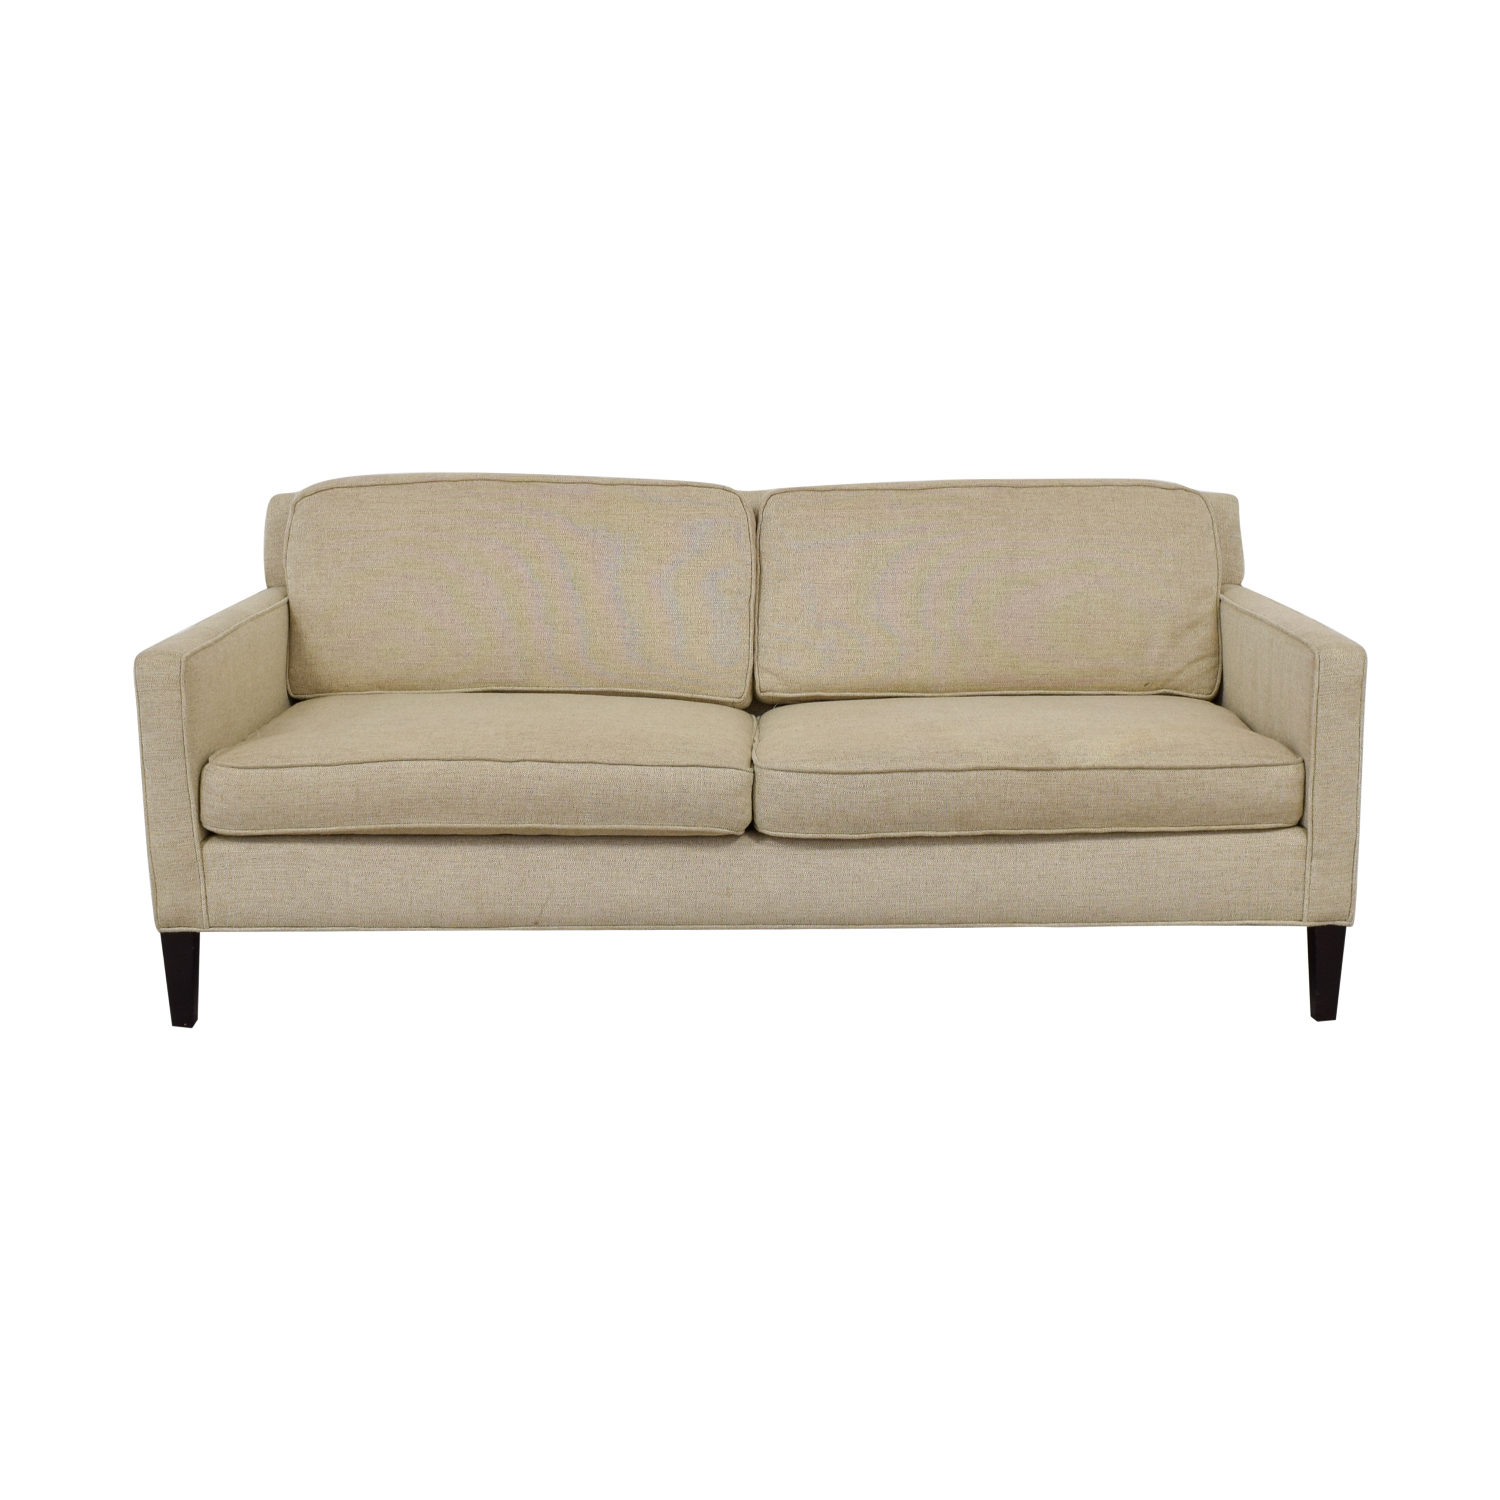 Crate & Barrel Rochelle Beige Two-Cushion Sofa Crate & Barrel